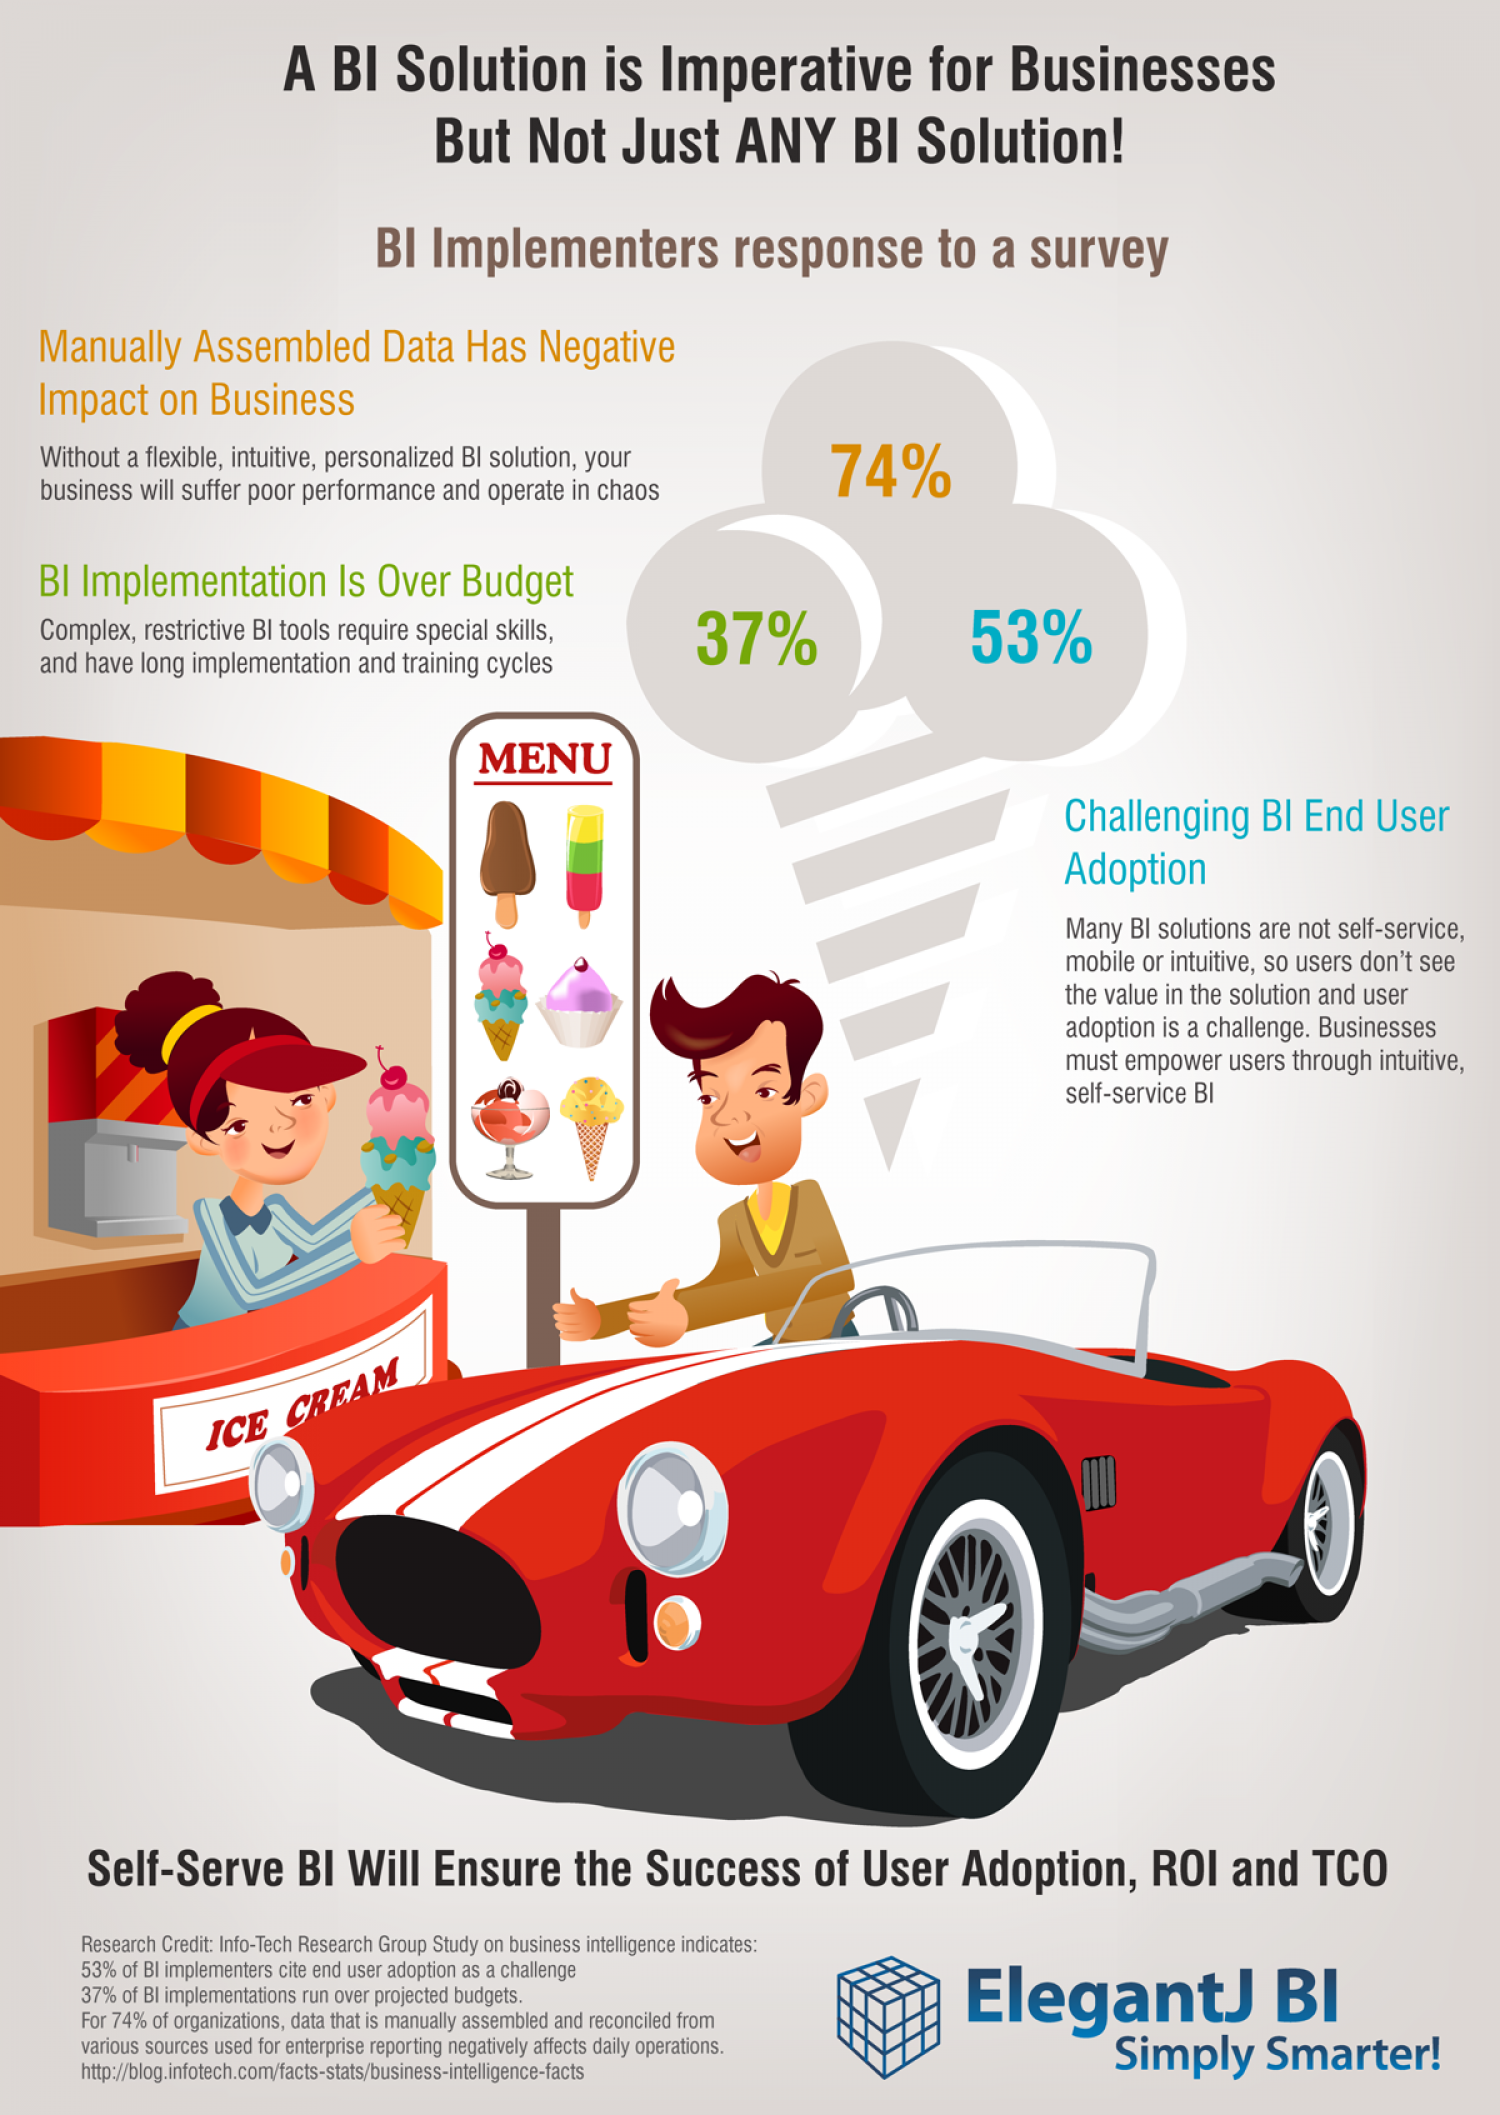 Be picky about your BI solution. It matters! Infographic